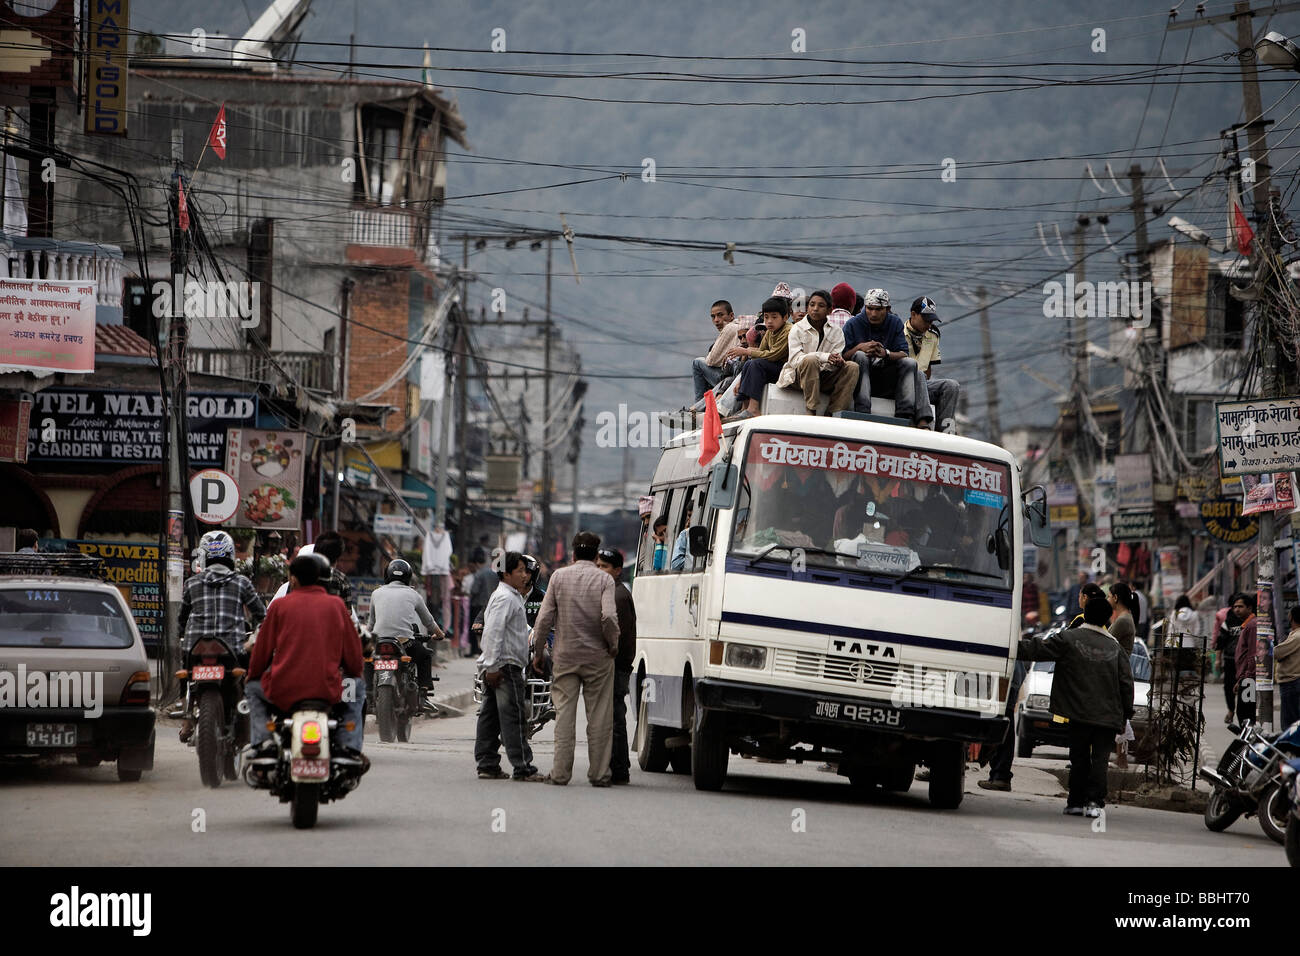 Lakeside District, Pokhara, Nepal; Bus laden with people - Stock Image